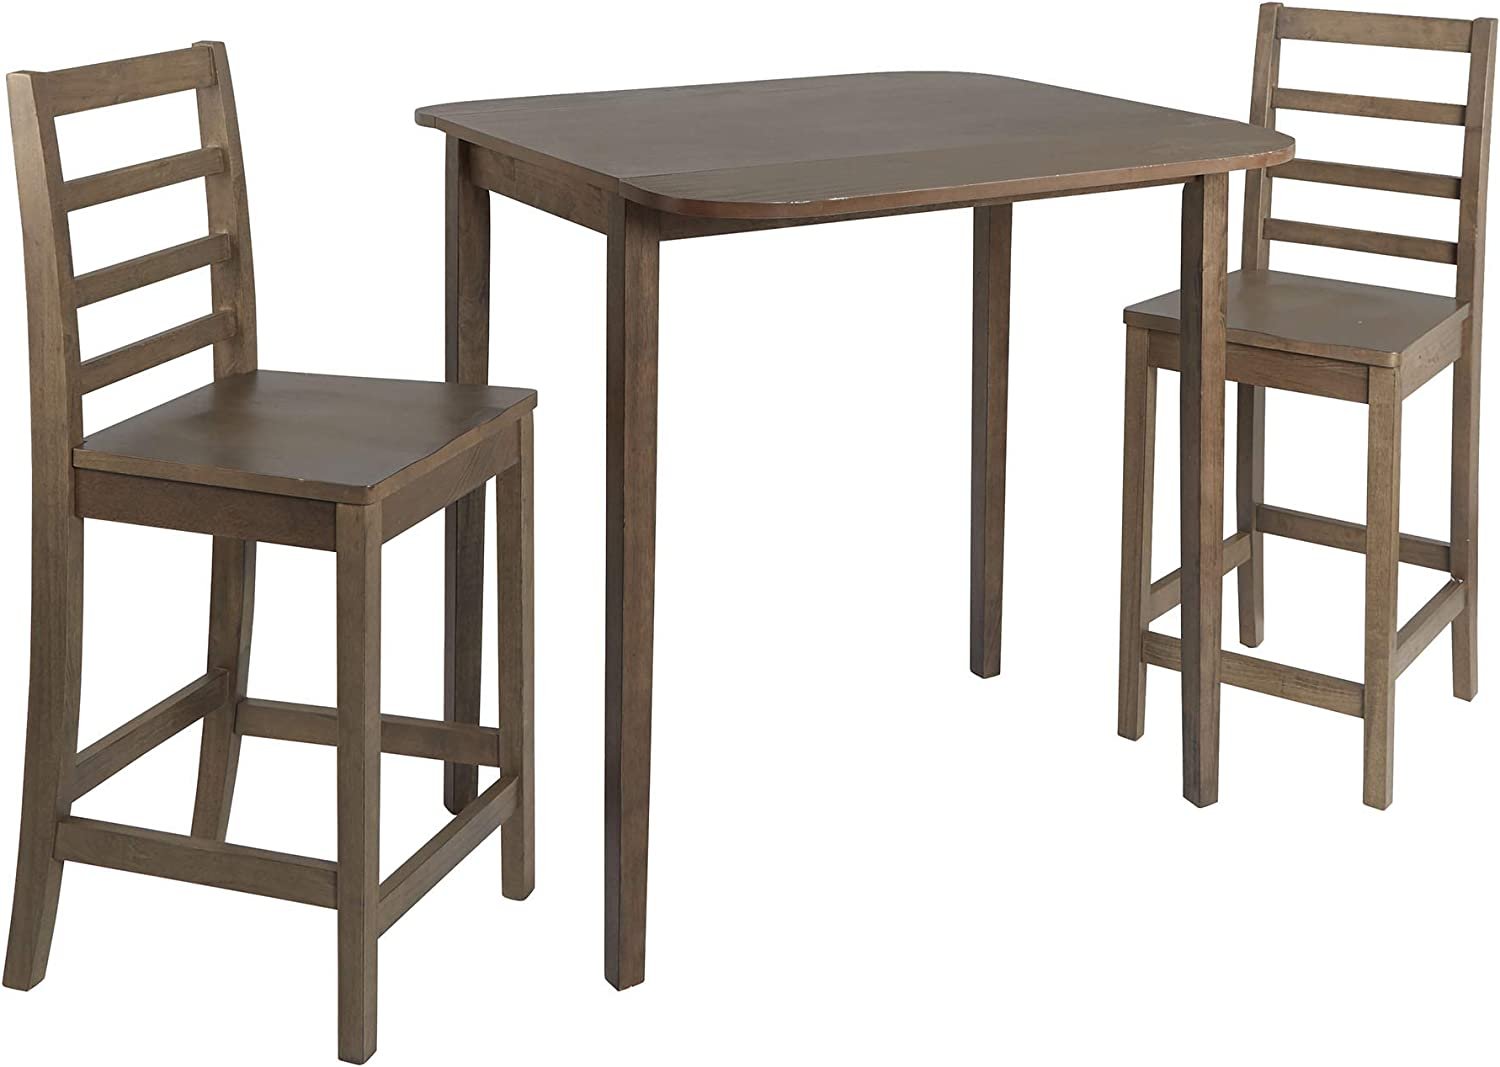 SunBear Furniture Dining Kitchen Set of 3 Square Table and 2 Classic Wood Chairs Warm in Dark Walnut